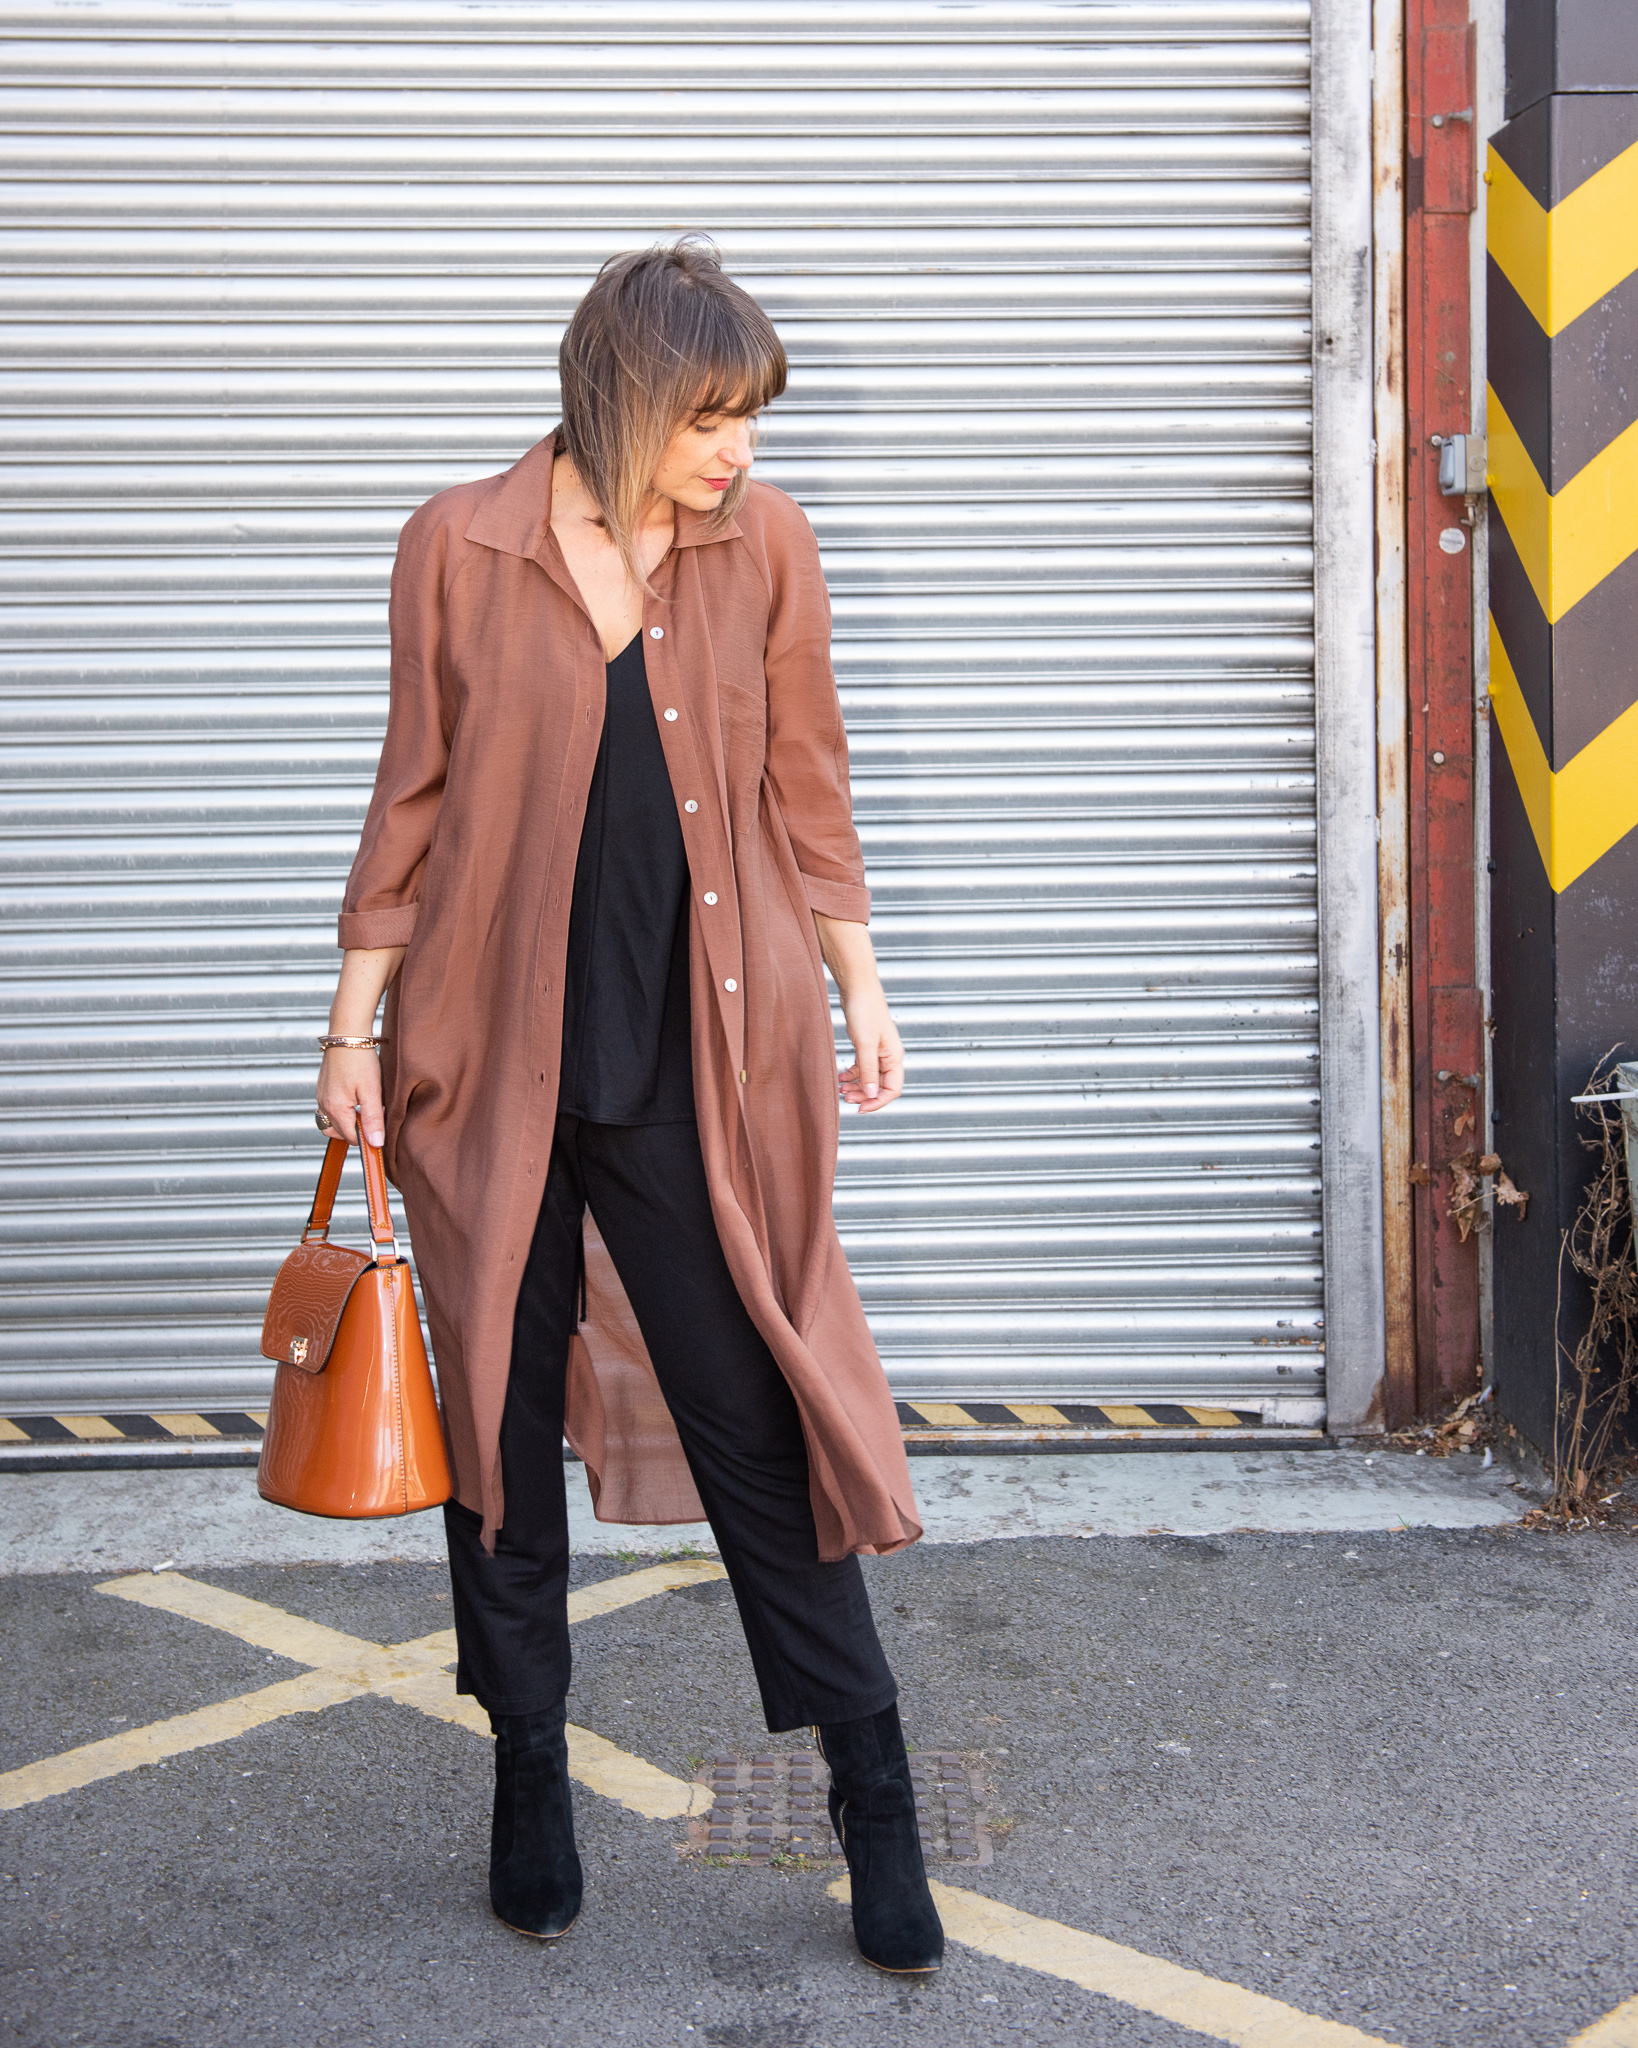 OUTFIT OF THE DAY WITH A BLACK JUMPSUIT AND BROWN ACCESSORIES